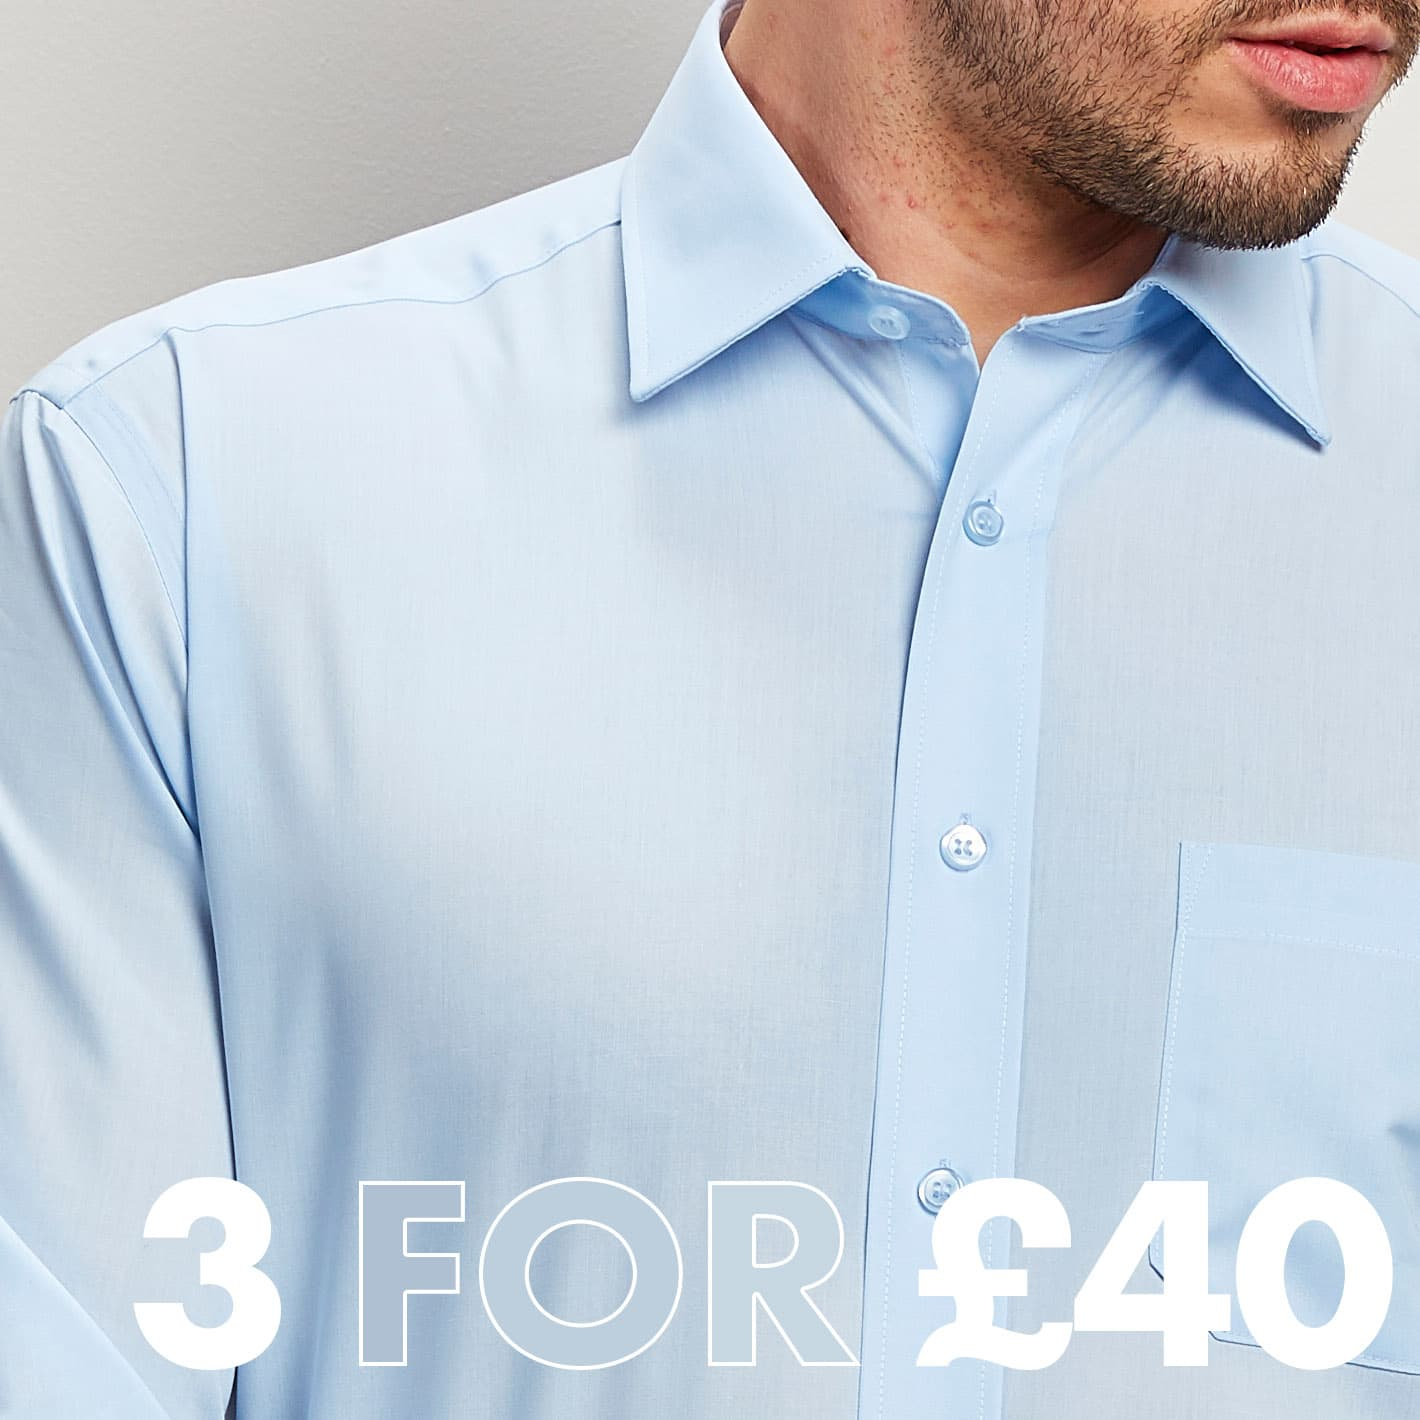 3 Shirts for £40